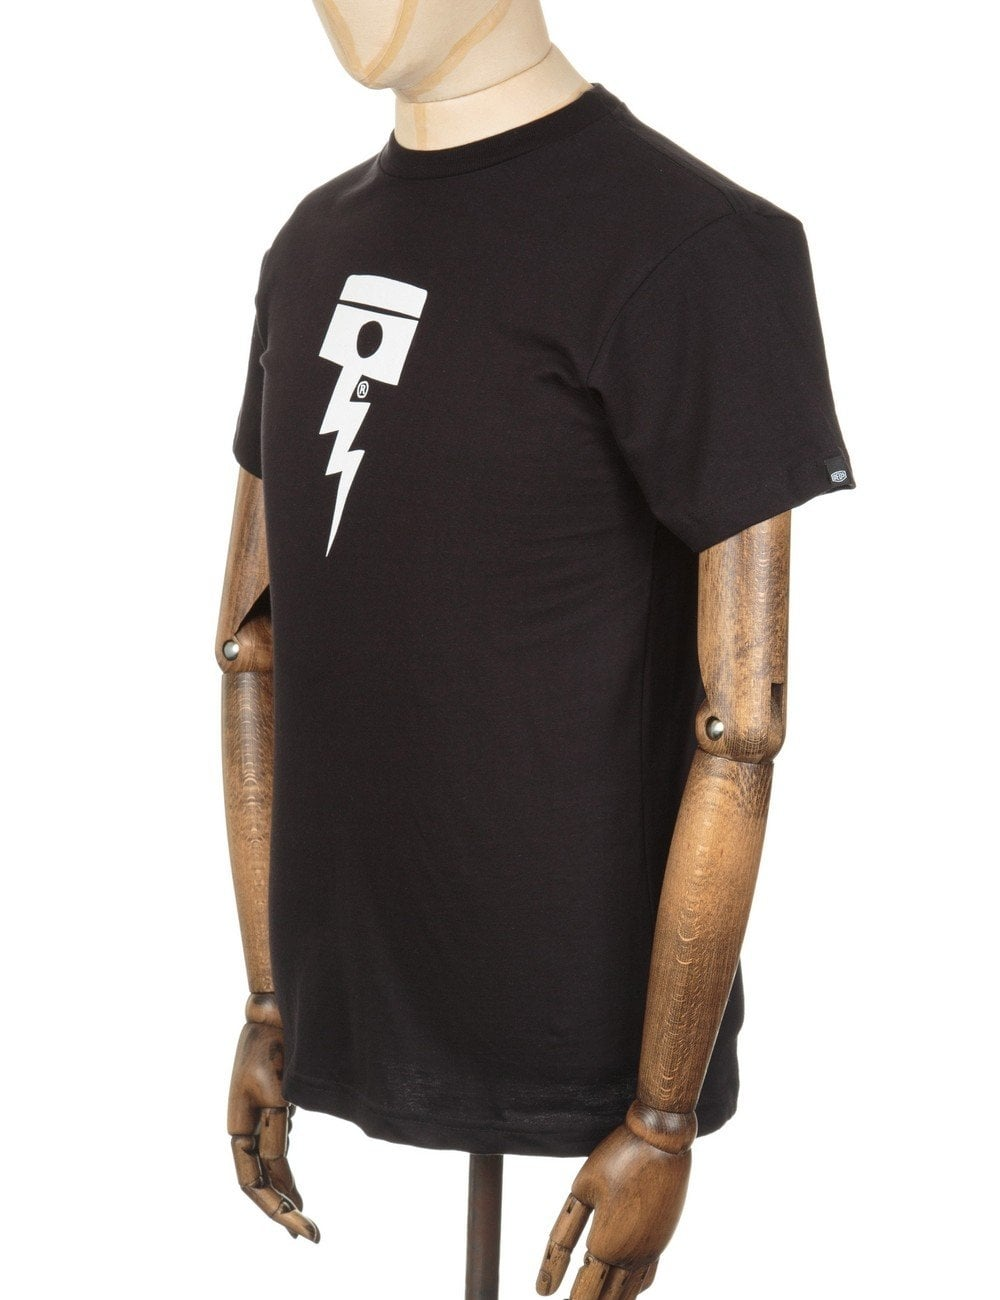 bb690d450 Deus Ex Machina Pisstin Tee - Black - Clothing from Fat Buddha Store UK